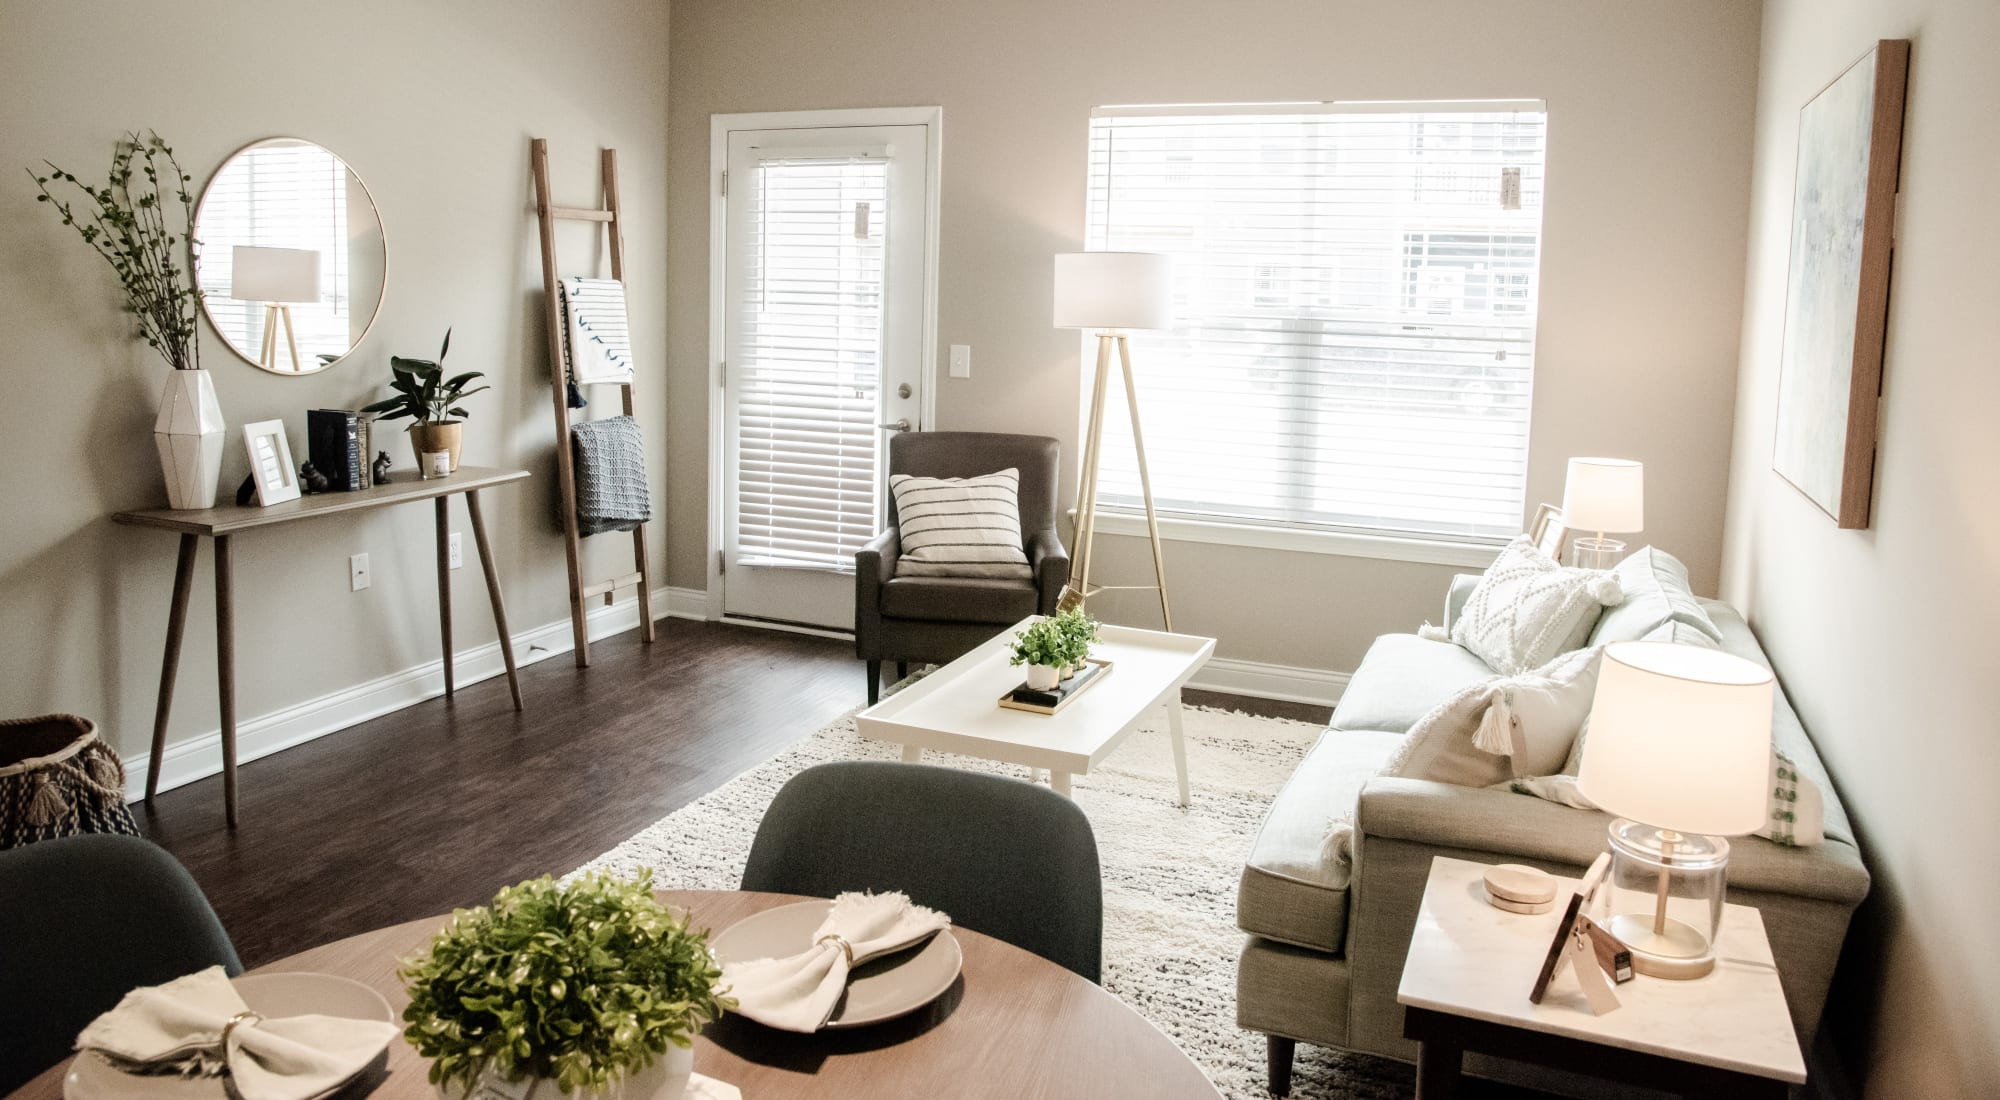 Model home's living area at Bonterra Apartments in Fort Wayne, Indiana